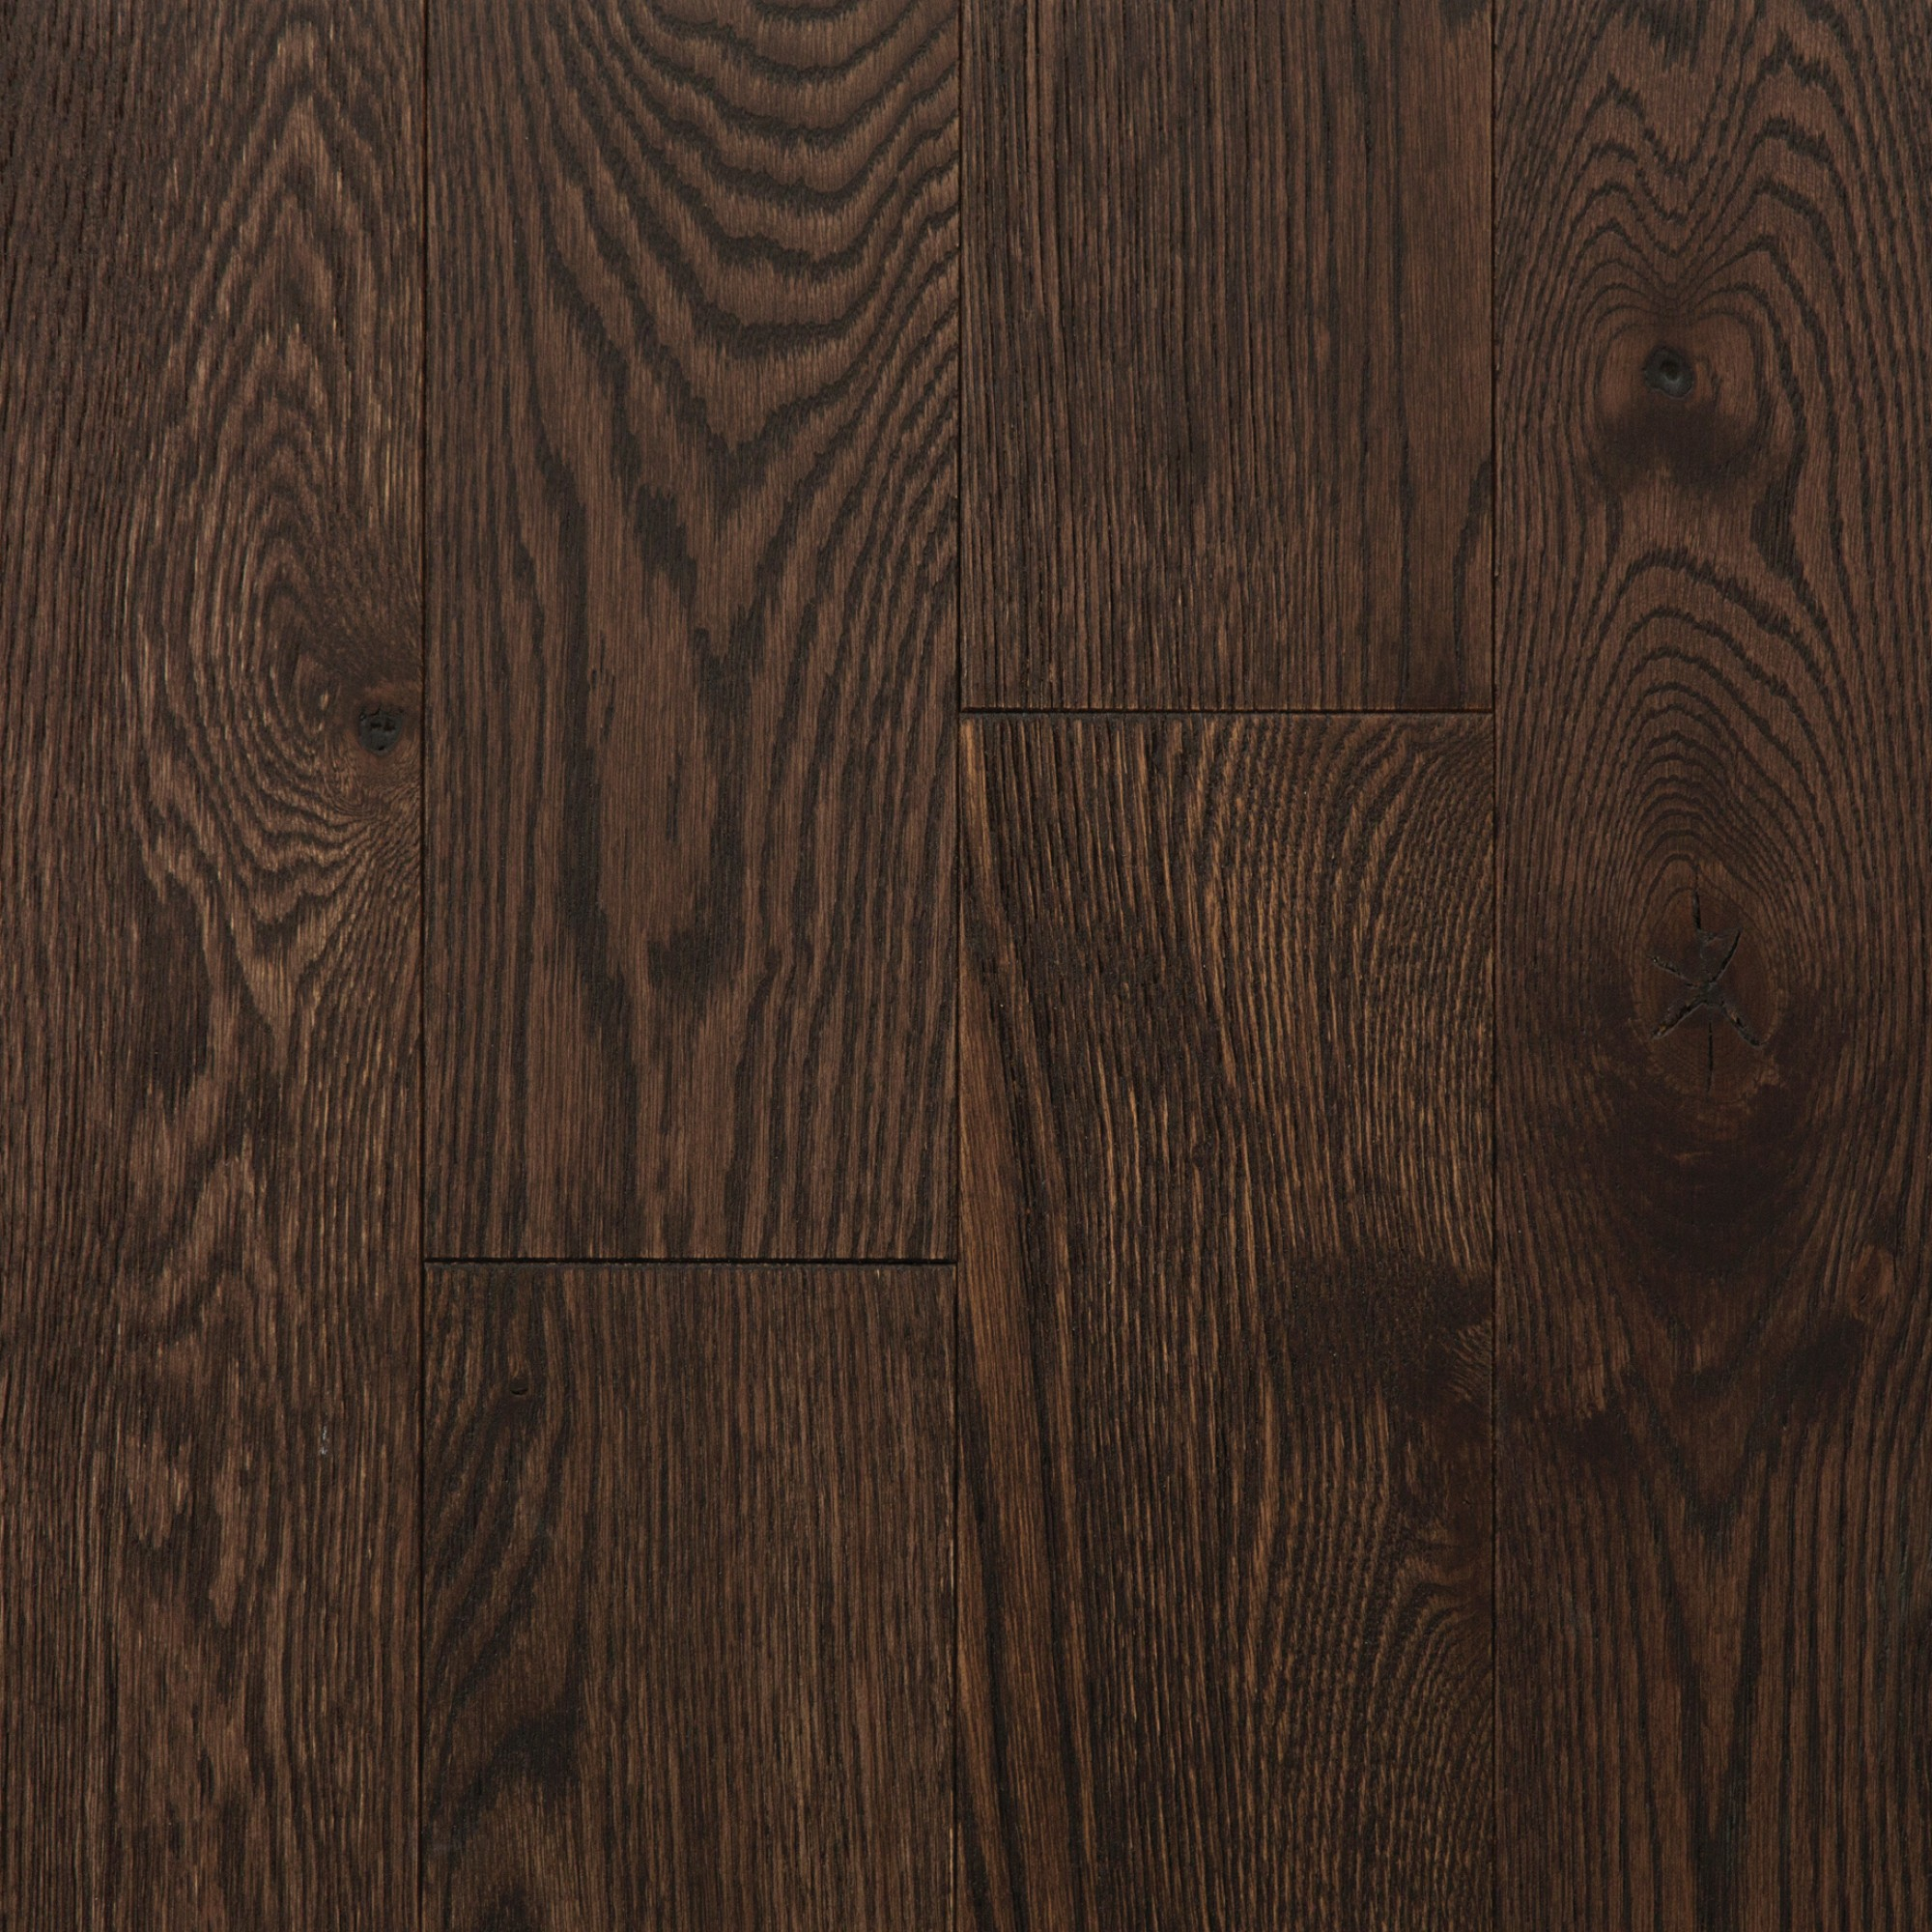 flooring oak the butterscotch en kitchen hardwood solid harvest in prime armstrong red floor residential browse wood ca